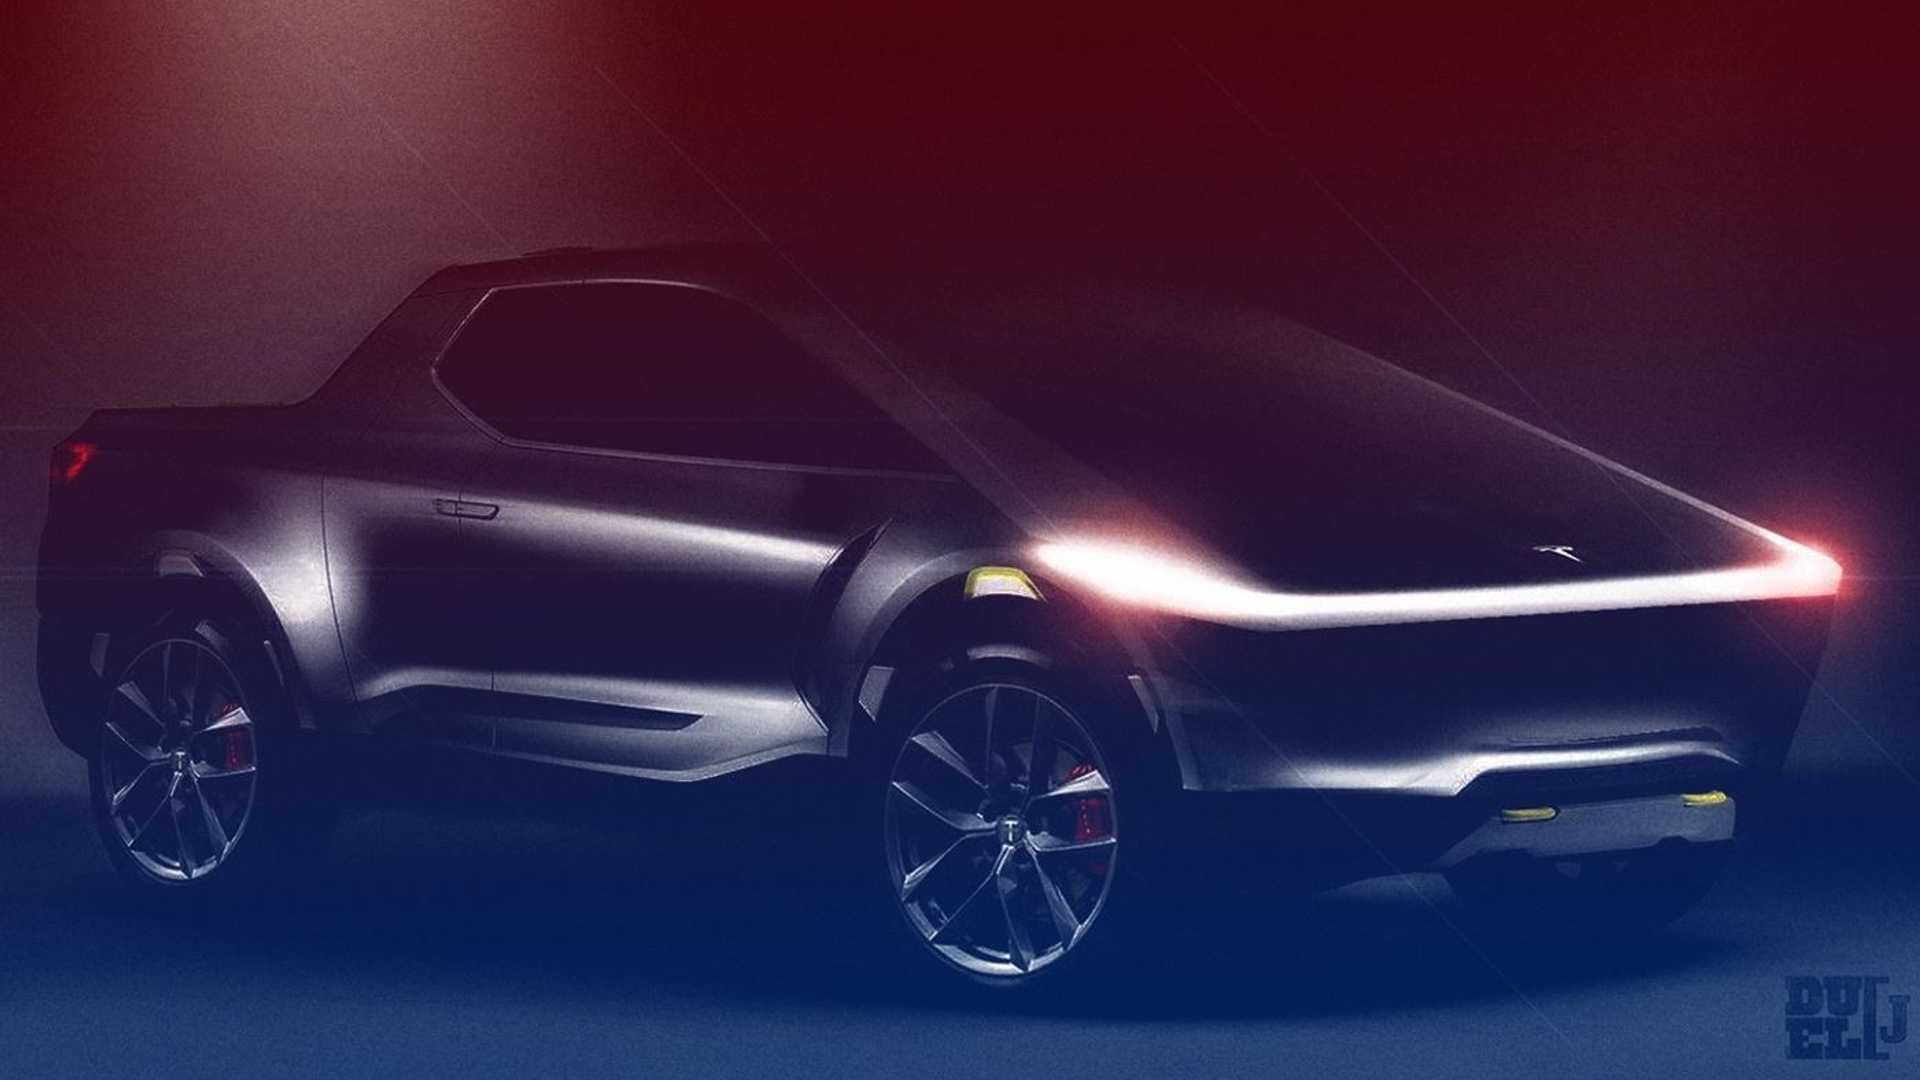 Tesla Pickup Truck Rendered To Life From Elon Musk Teaser